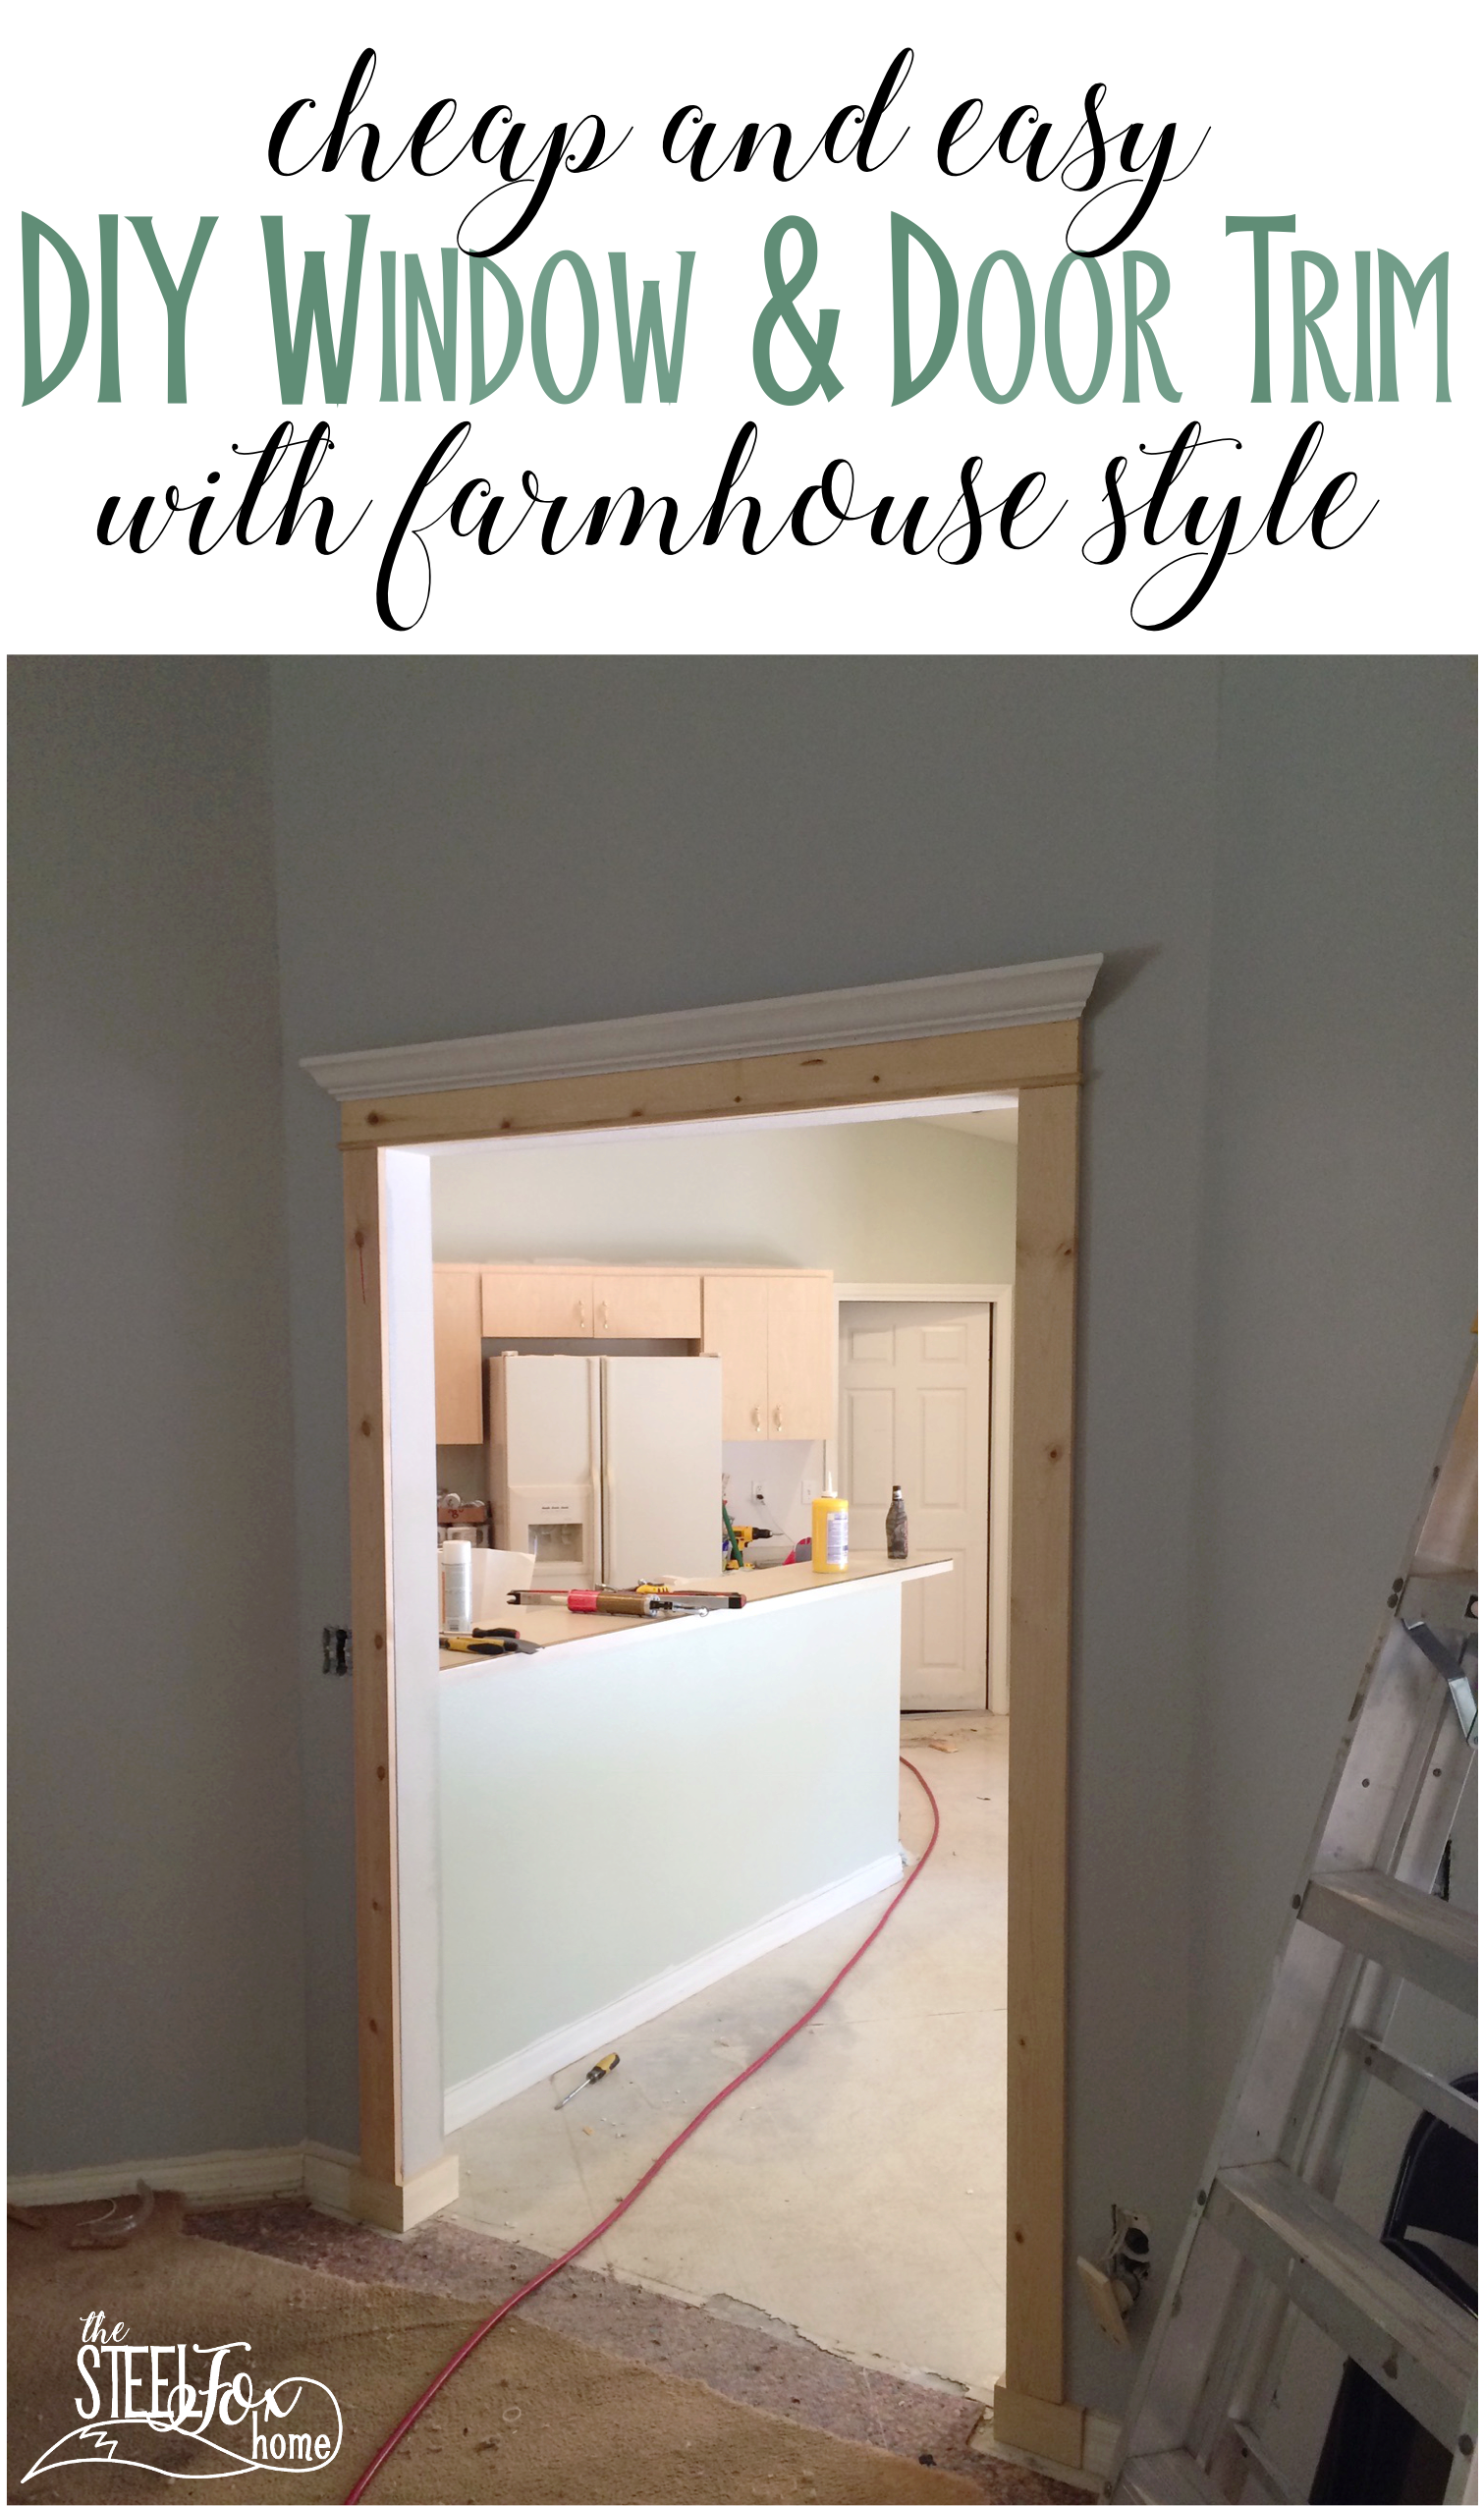 How to install DIY cased openings and custom window and